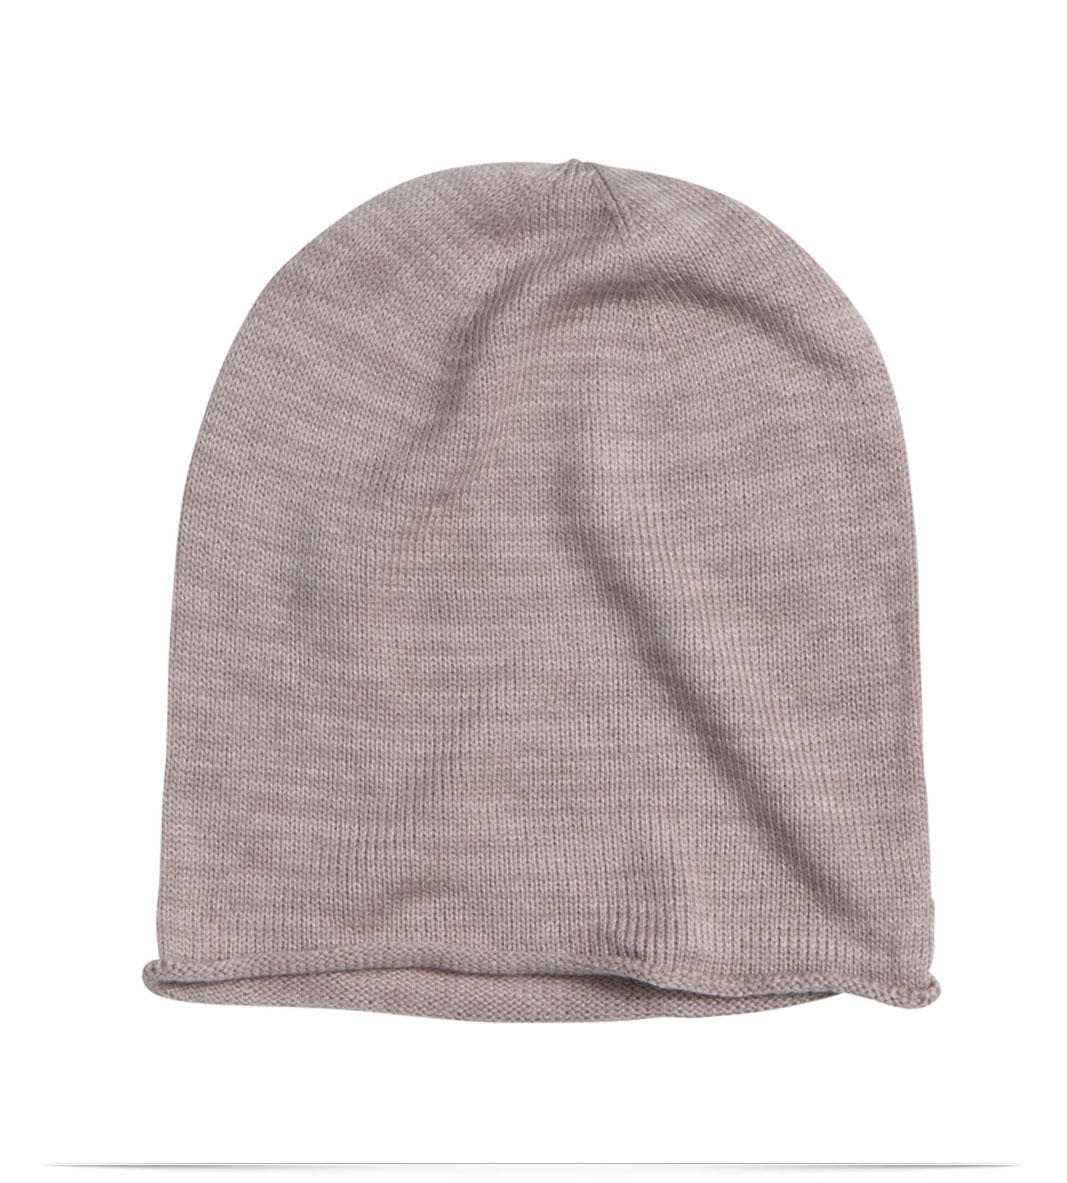 Custom winter knitted hat, embroidered logo design, acrylic from Dorami  Limited